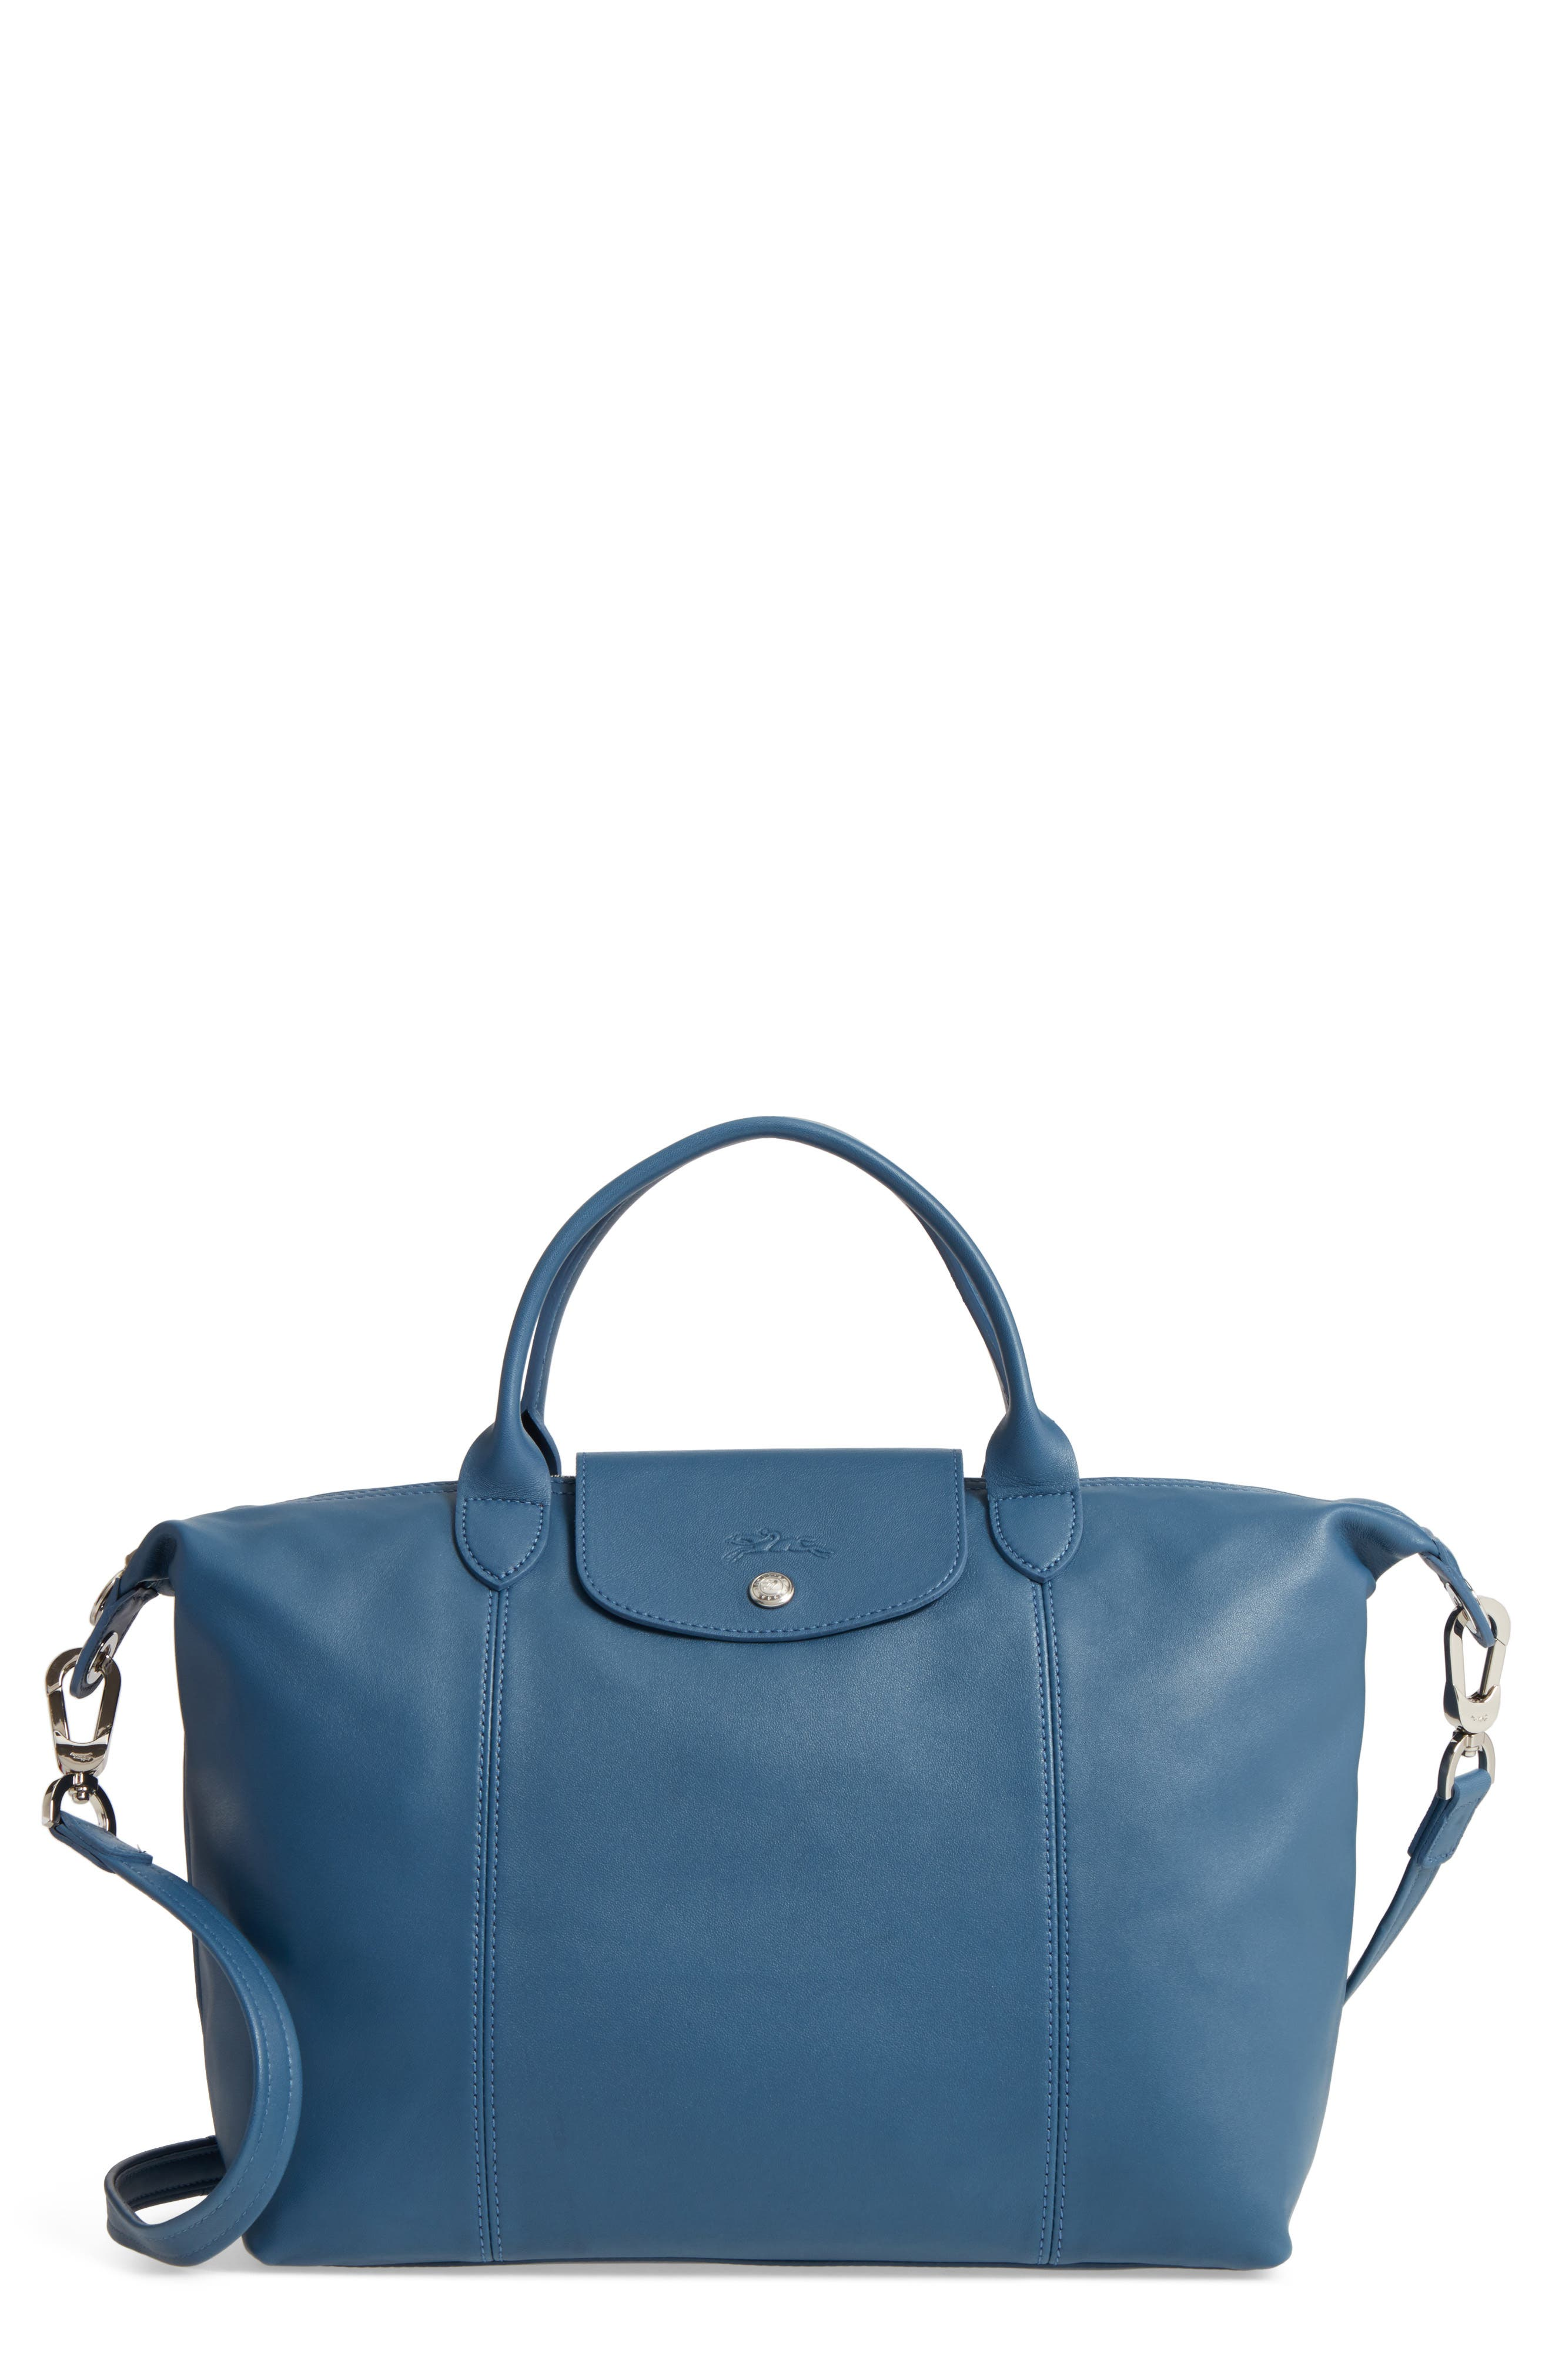 Medium 'Le Pliage Cuir' Leather Top Handle Tote,                             Main thumbnail 17, color,